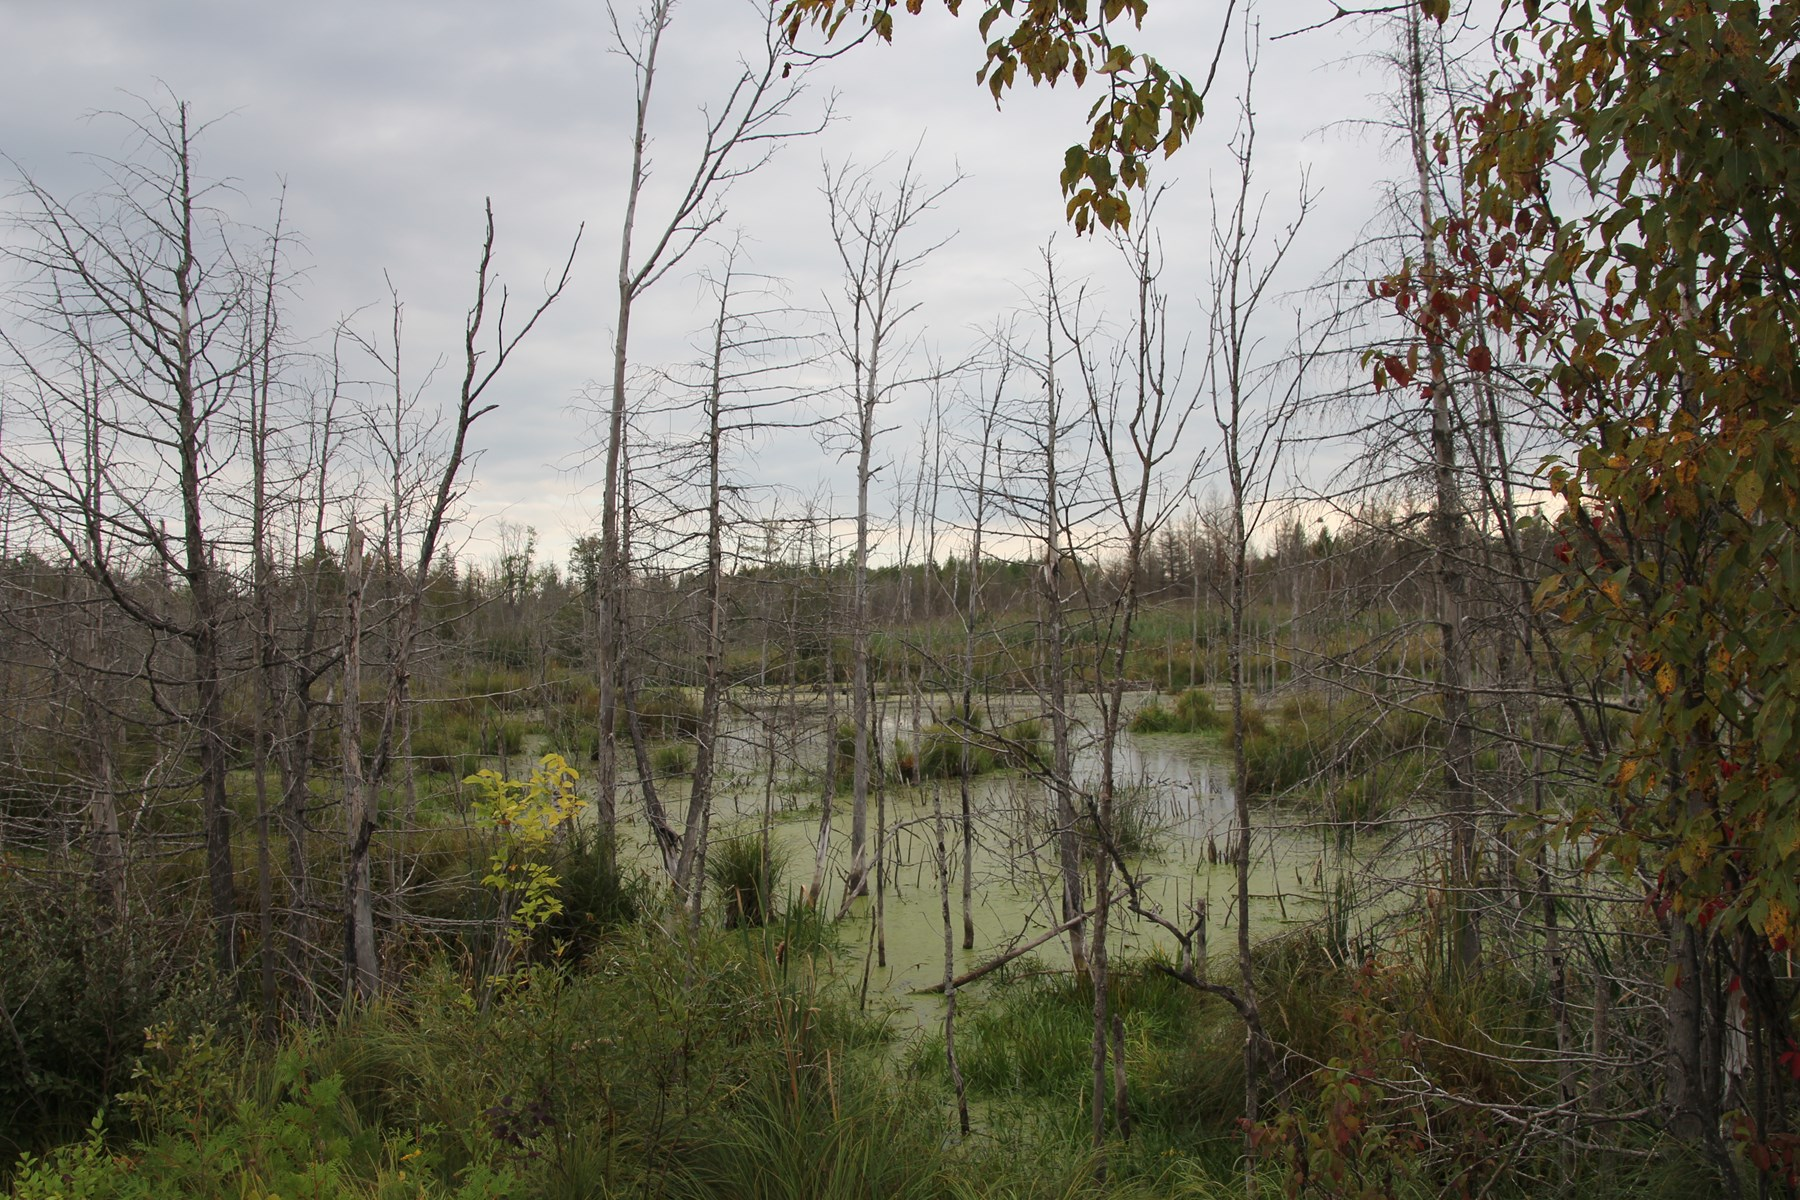 Hunting Land For Sale Northern Michigan Duck Hunting Pond